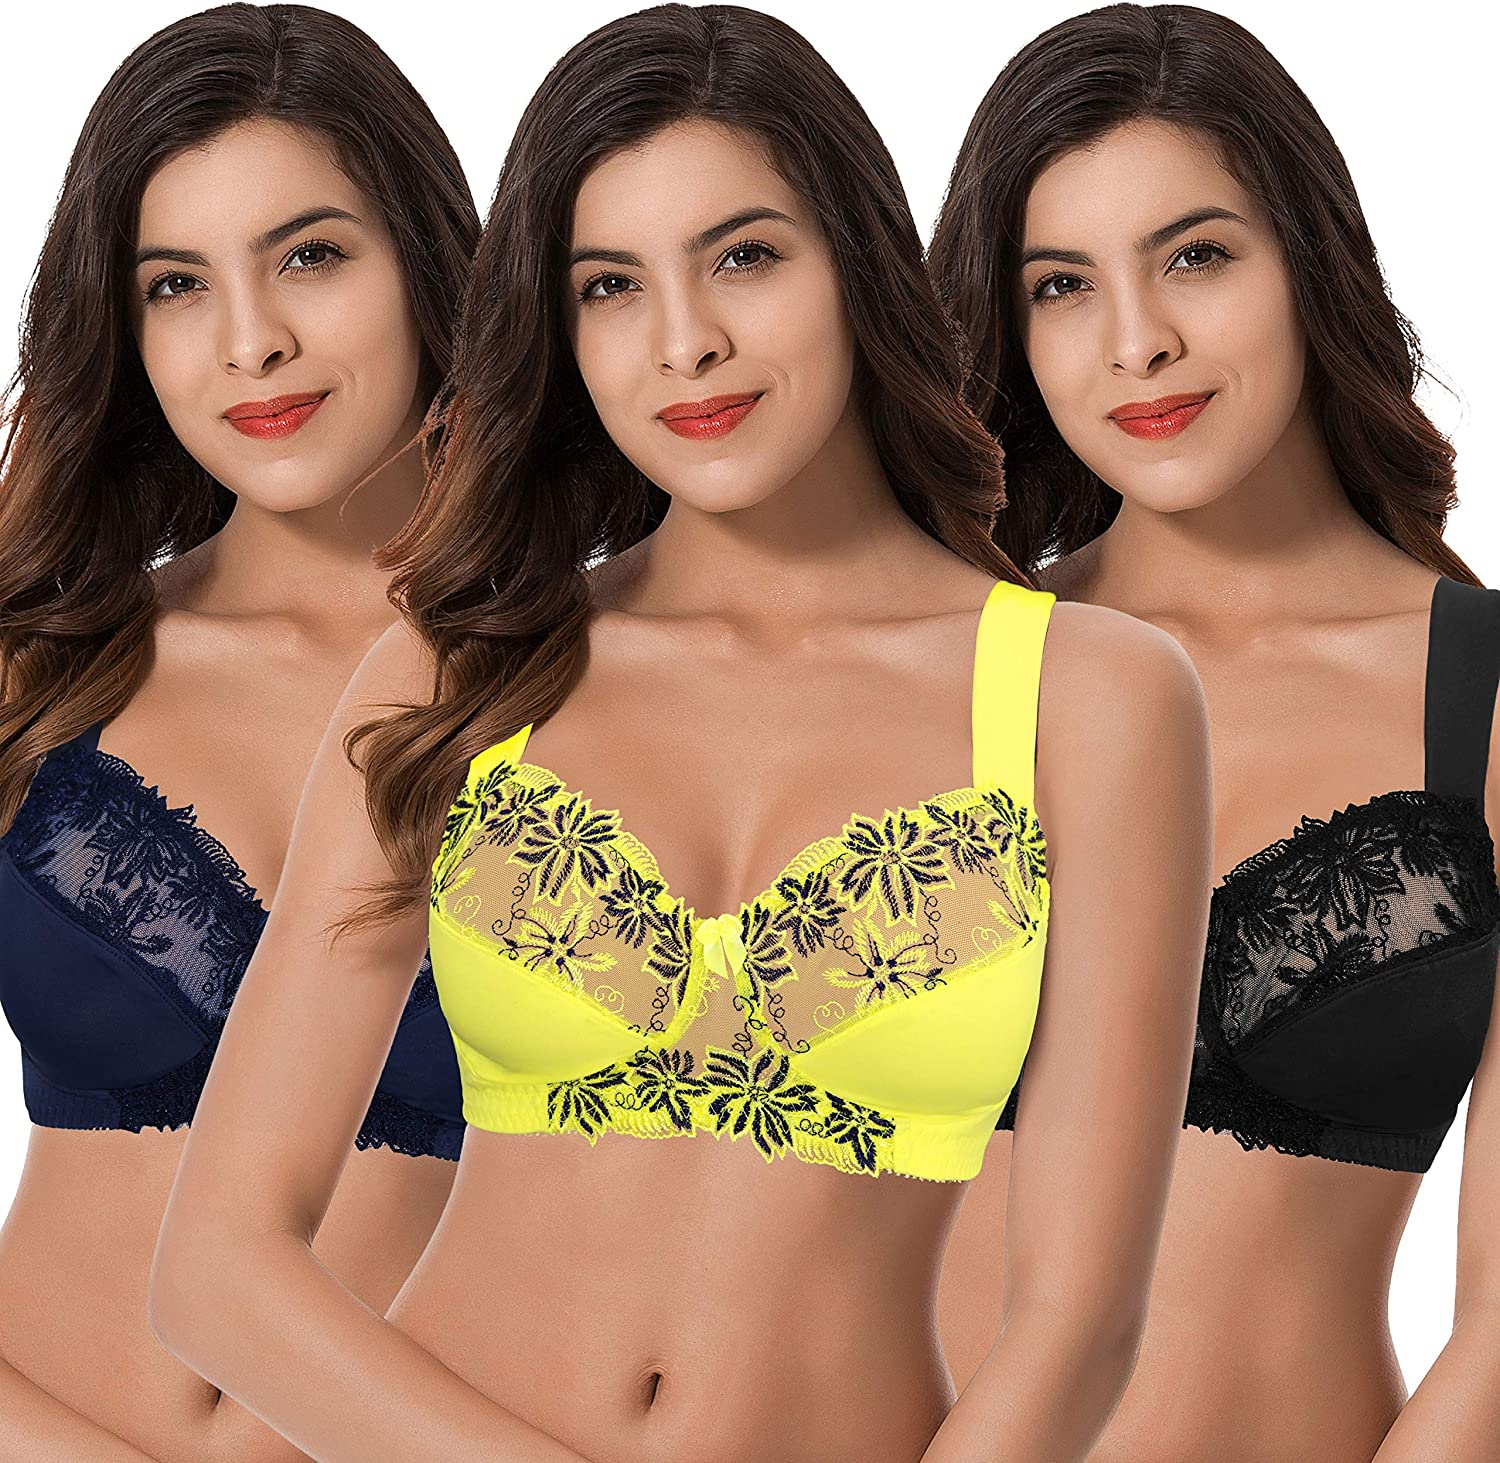 Popular product Curve Muse Plus Size Minimizer Unlined Now on sale Bra Lace with Wireless Em